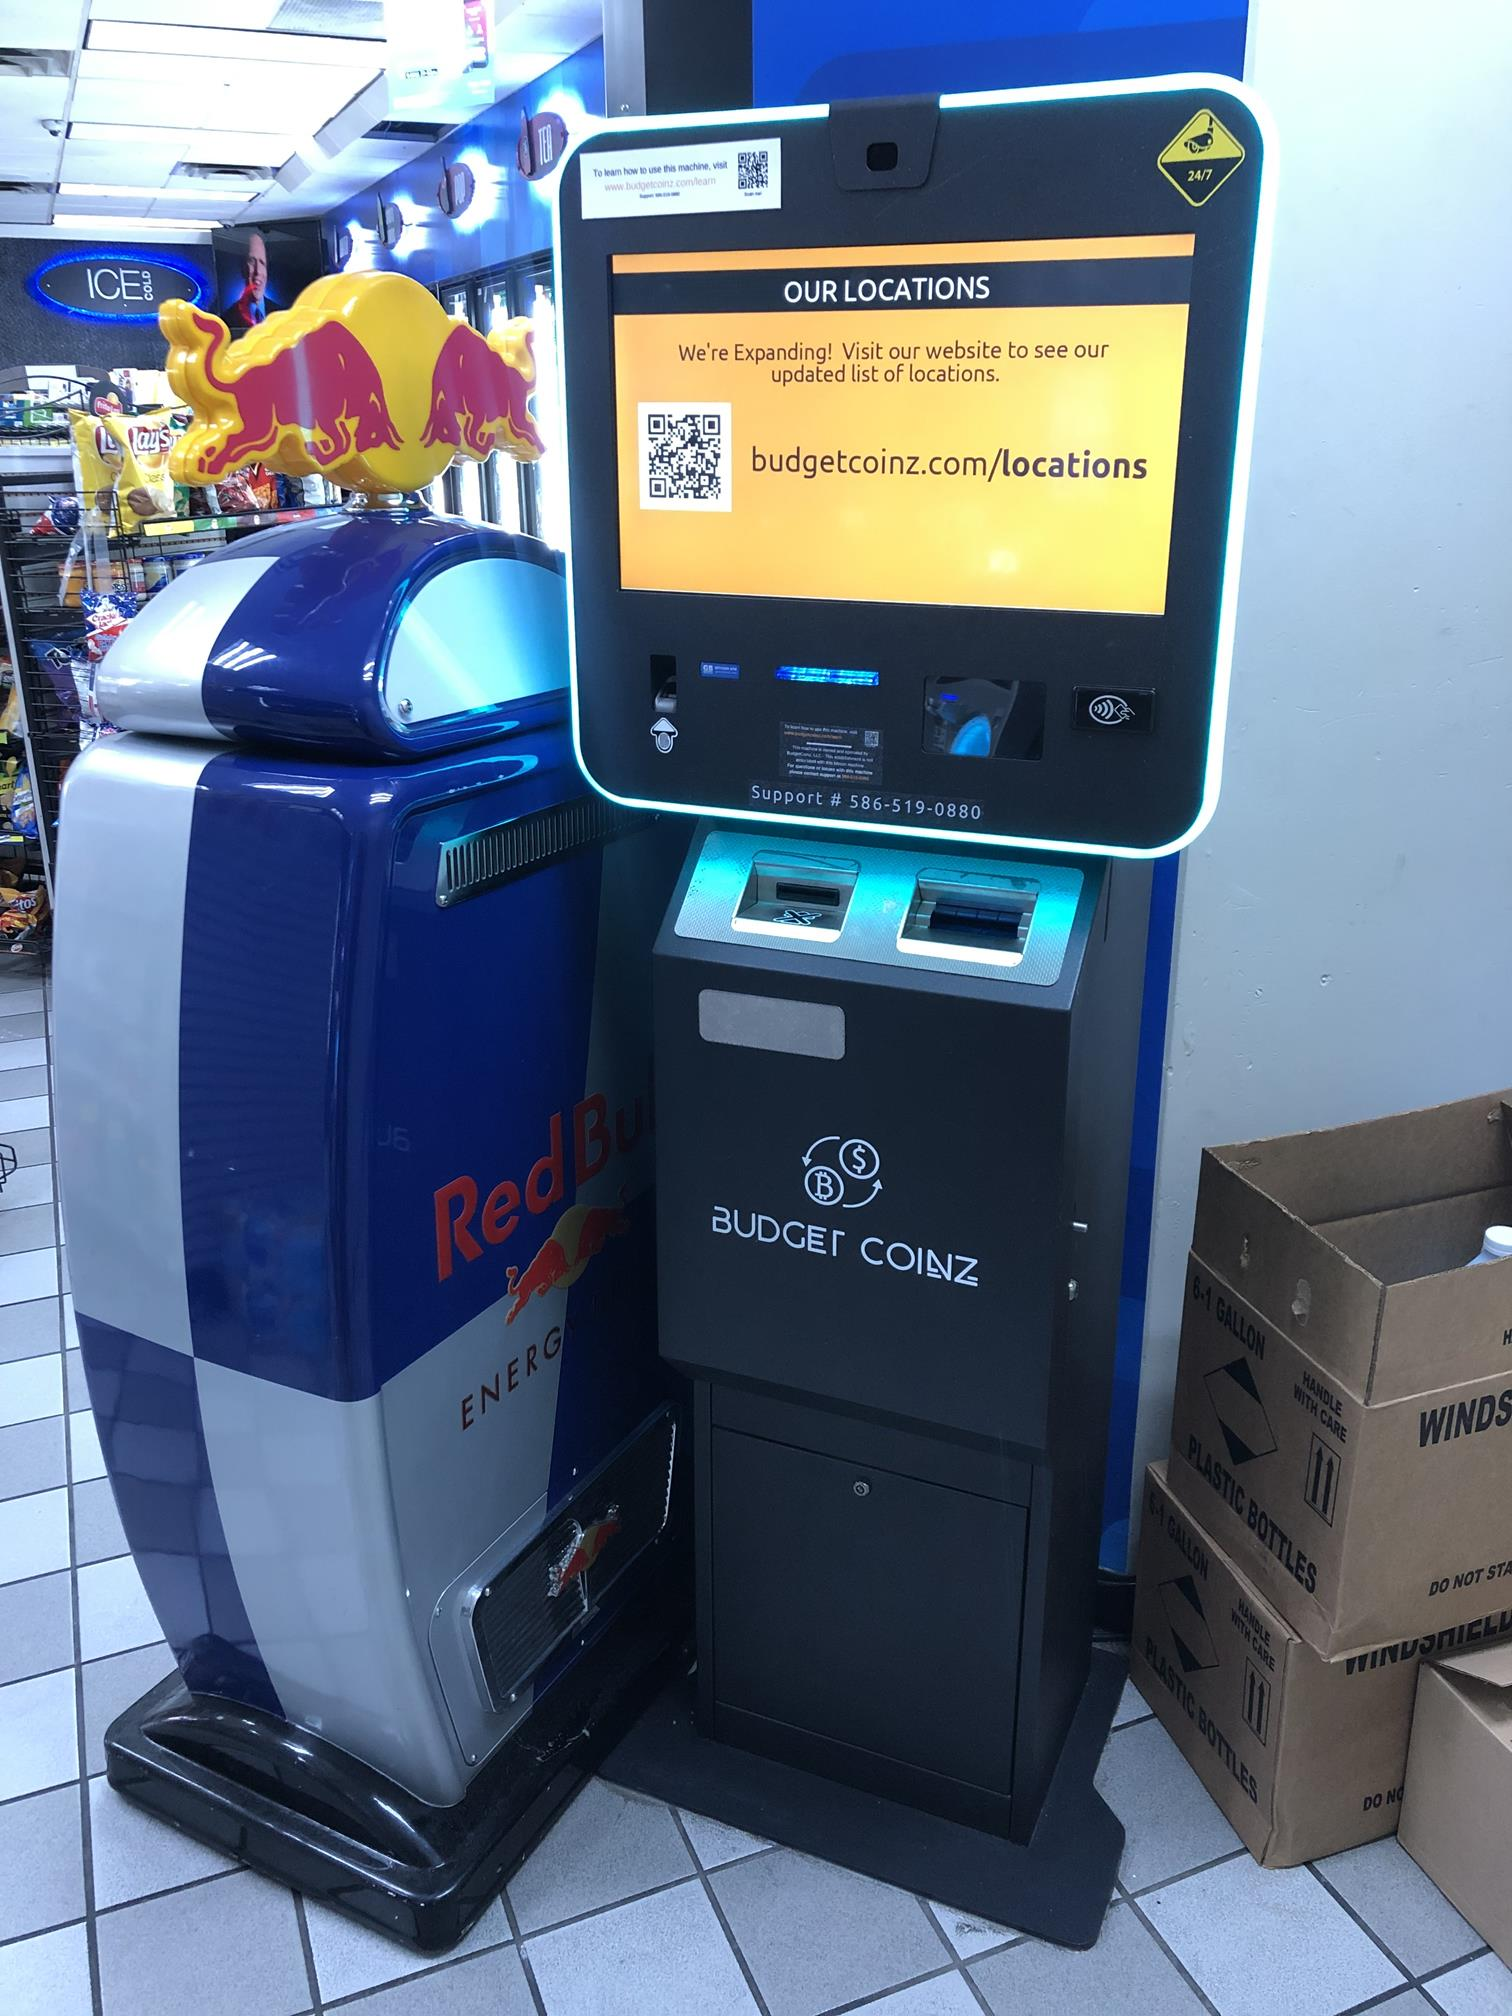 How to Buy Bitcoin with Cash Using a Bitcoin ATM